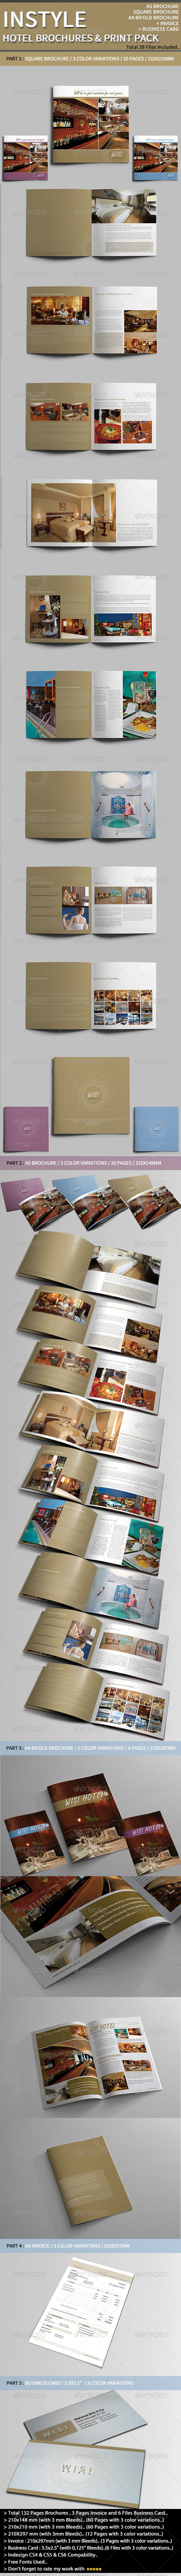 GraphicRiver InStyle Hotel Print Pack. 4235136